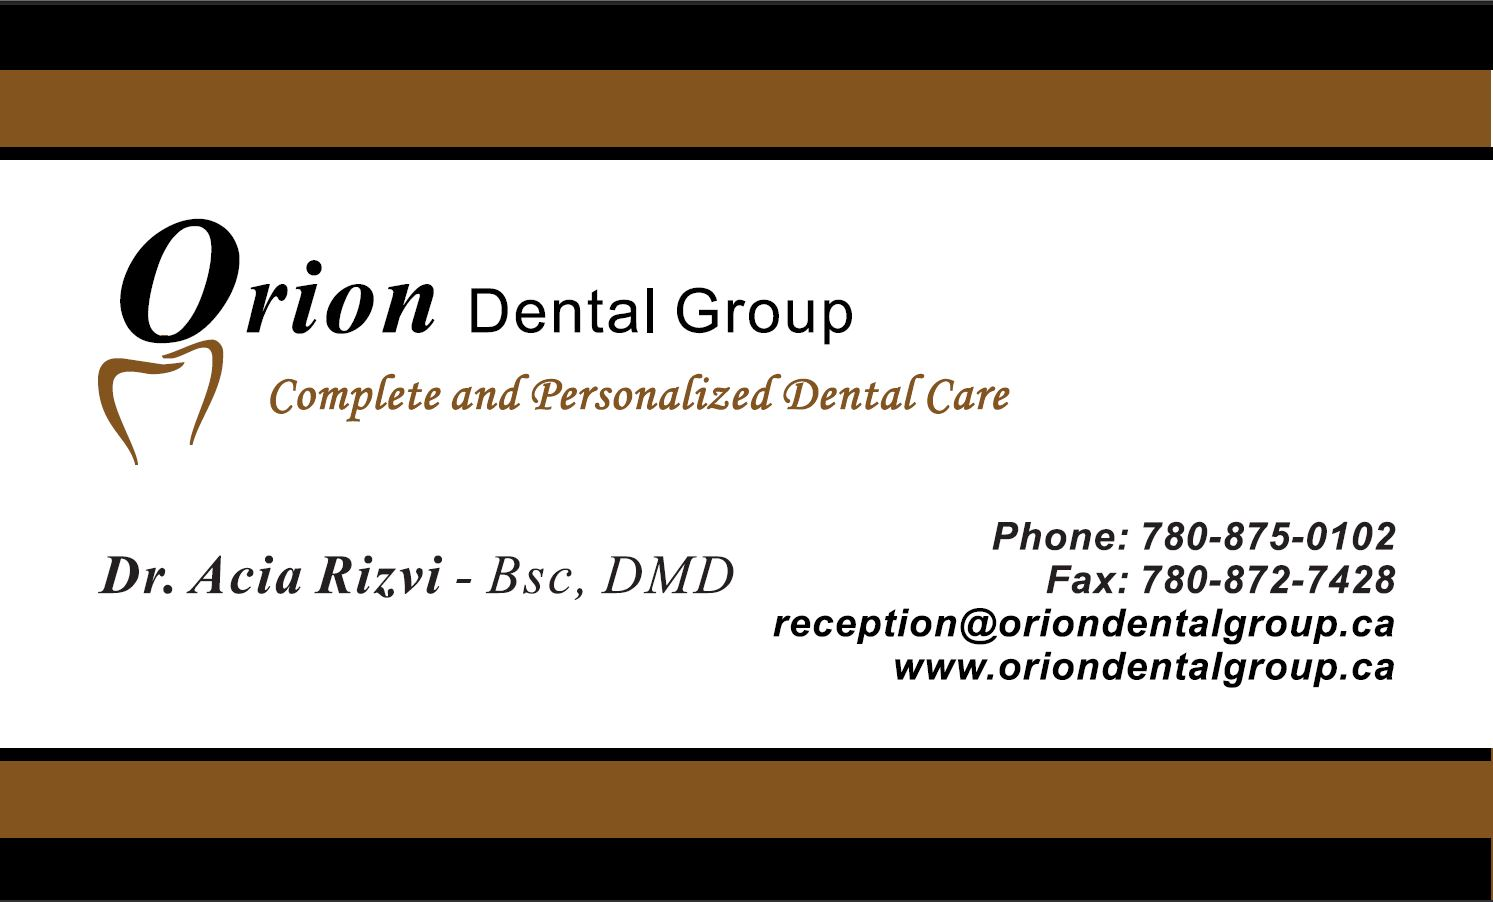 Orion Dental Group